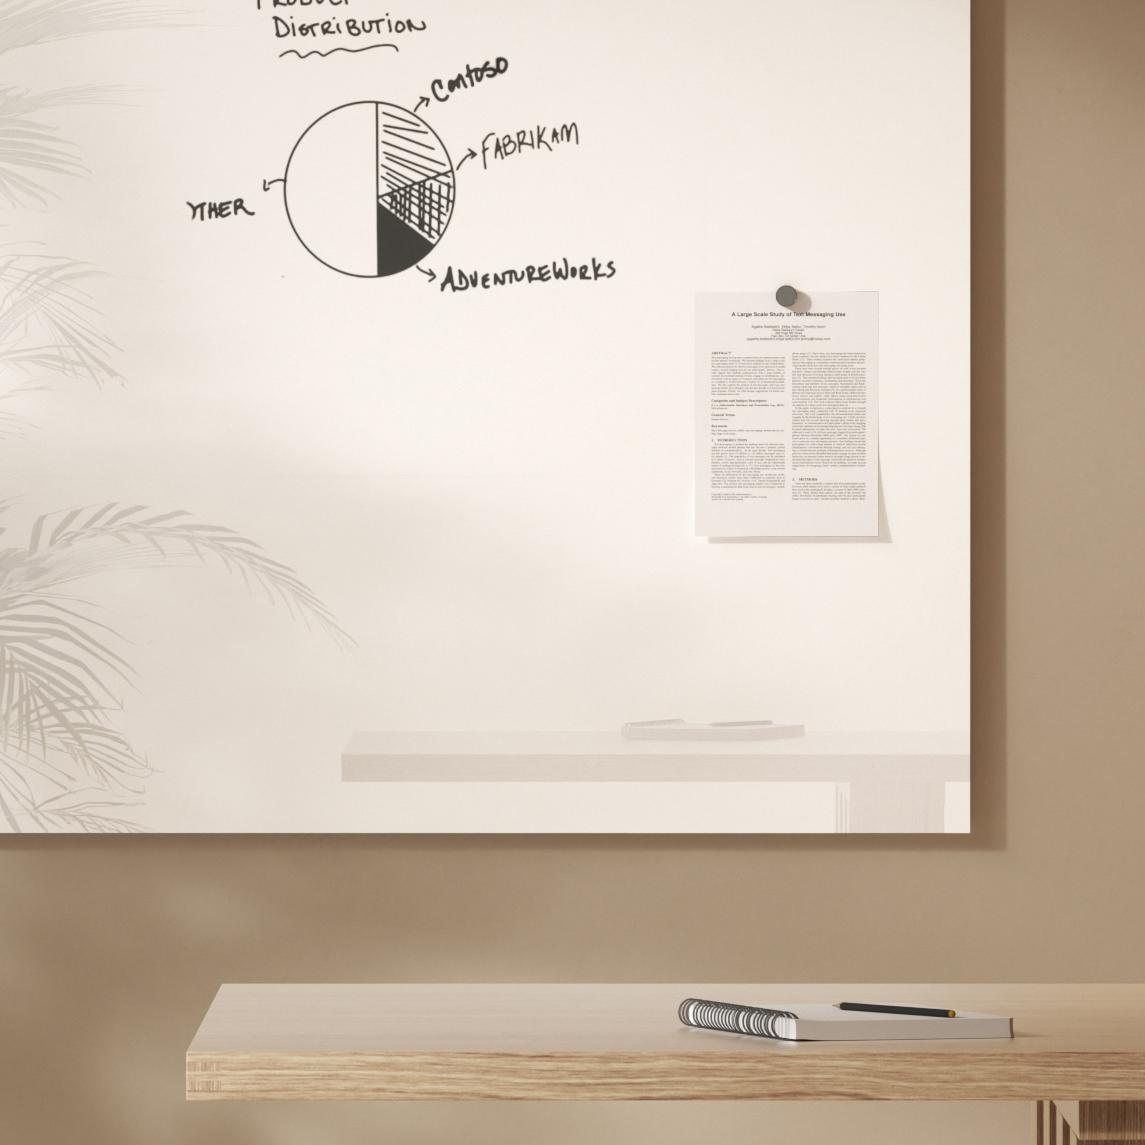 Glass whiteboard with drawing in black marker